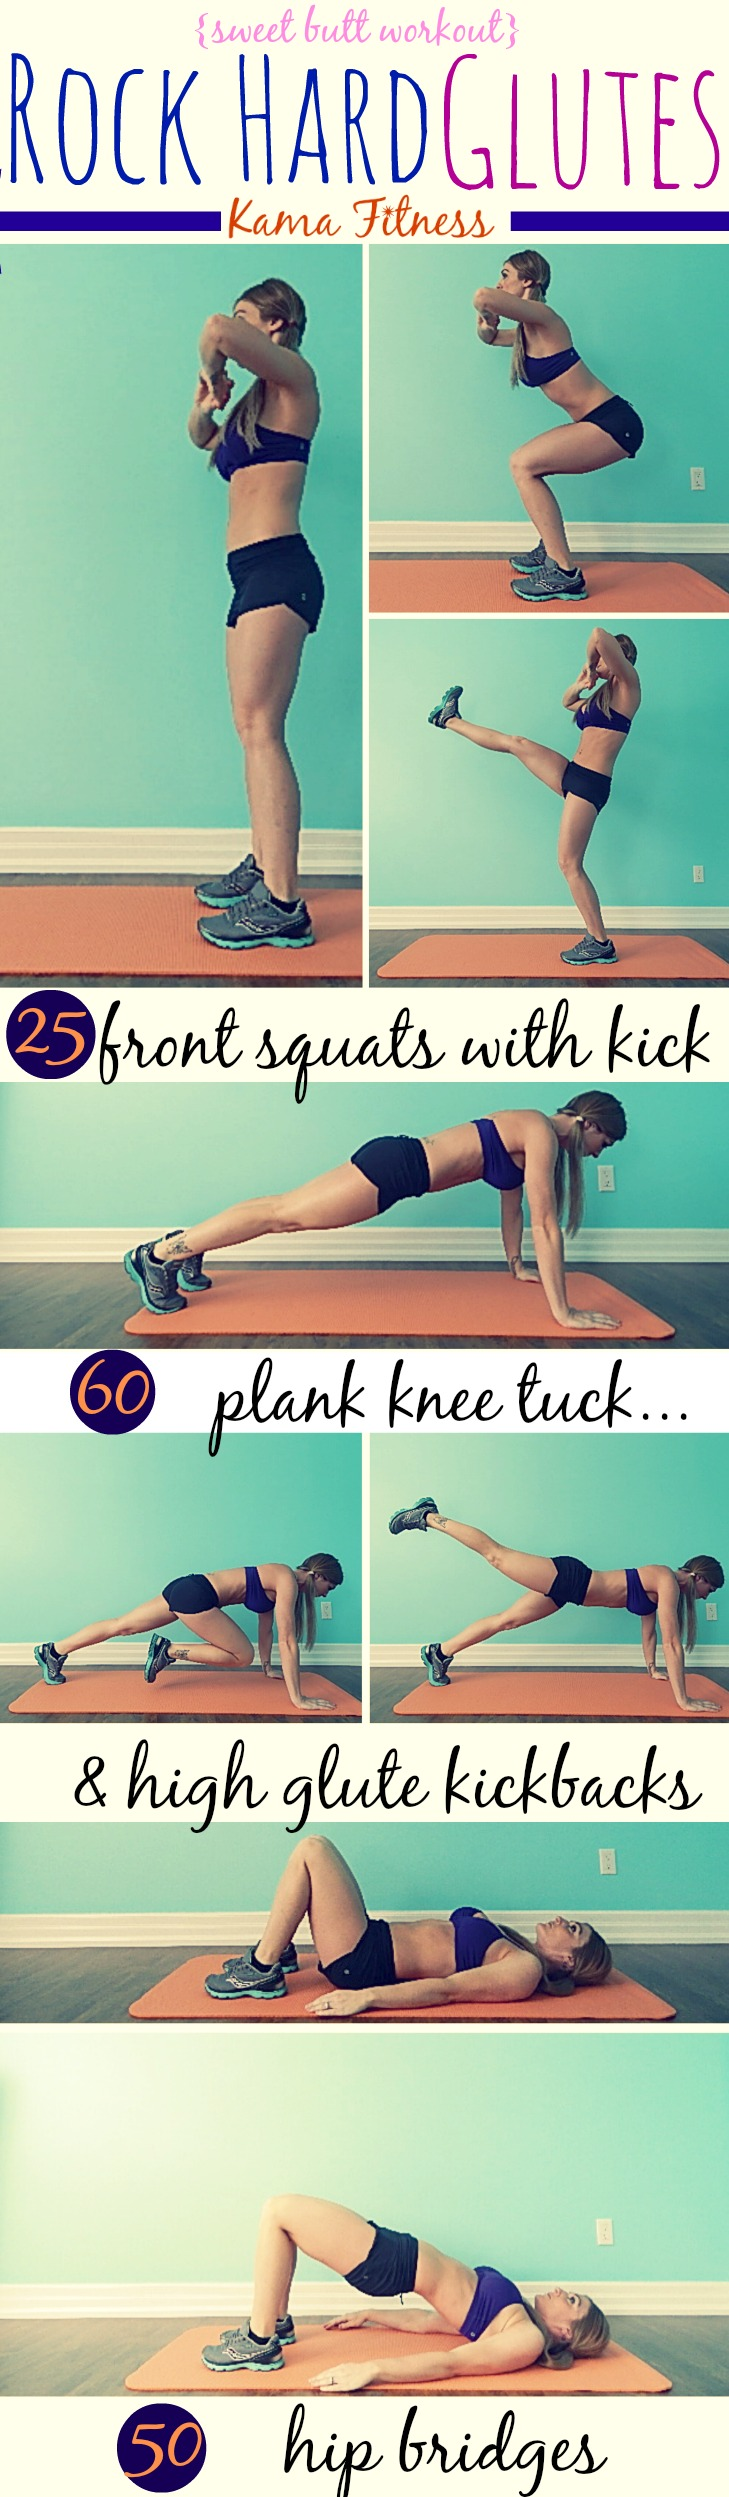 rock-hard-glutes-workout